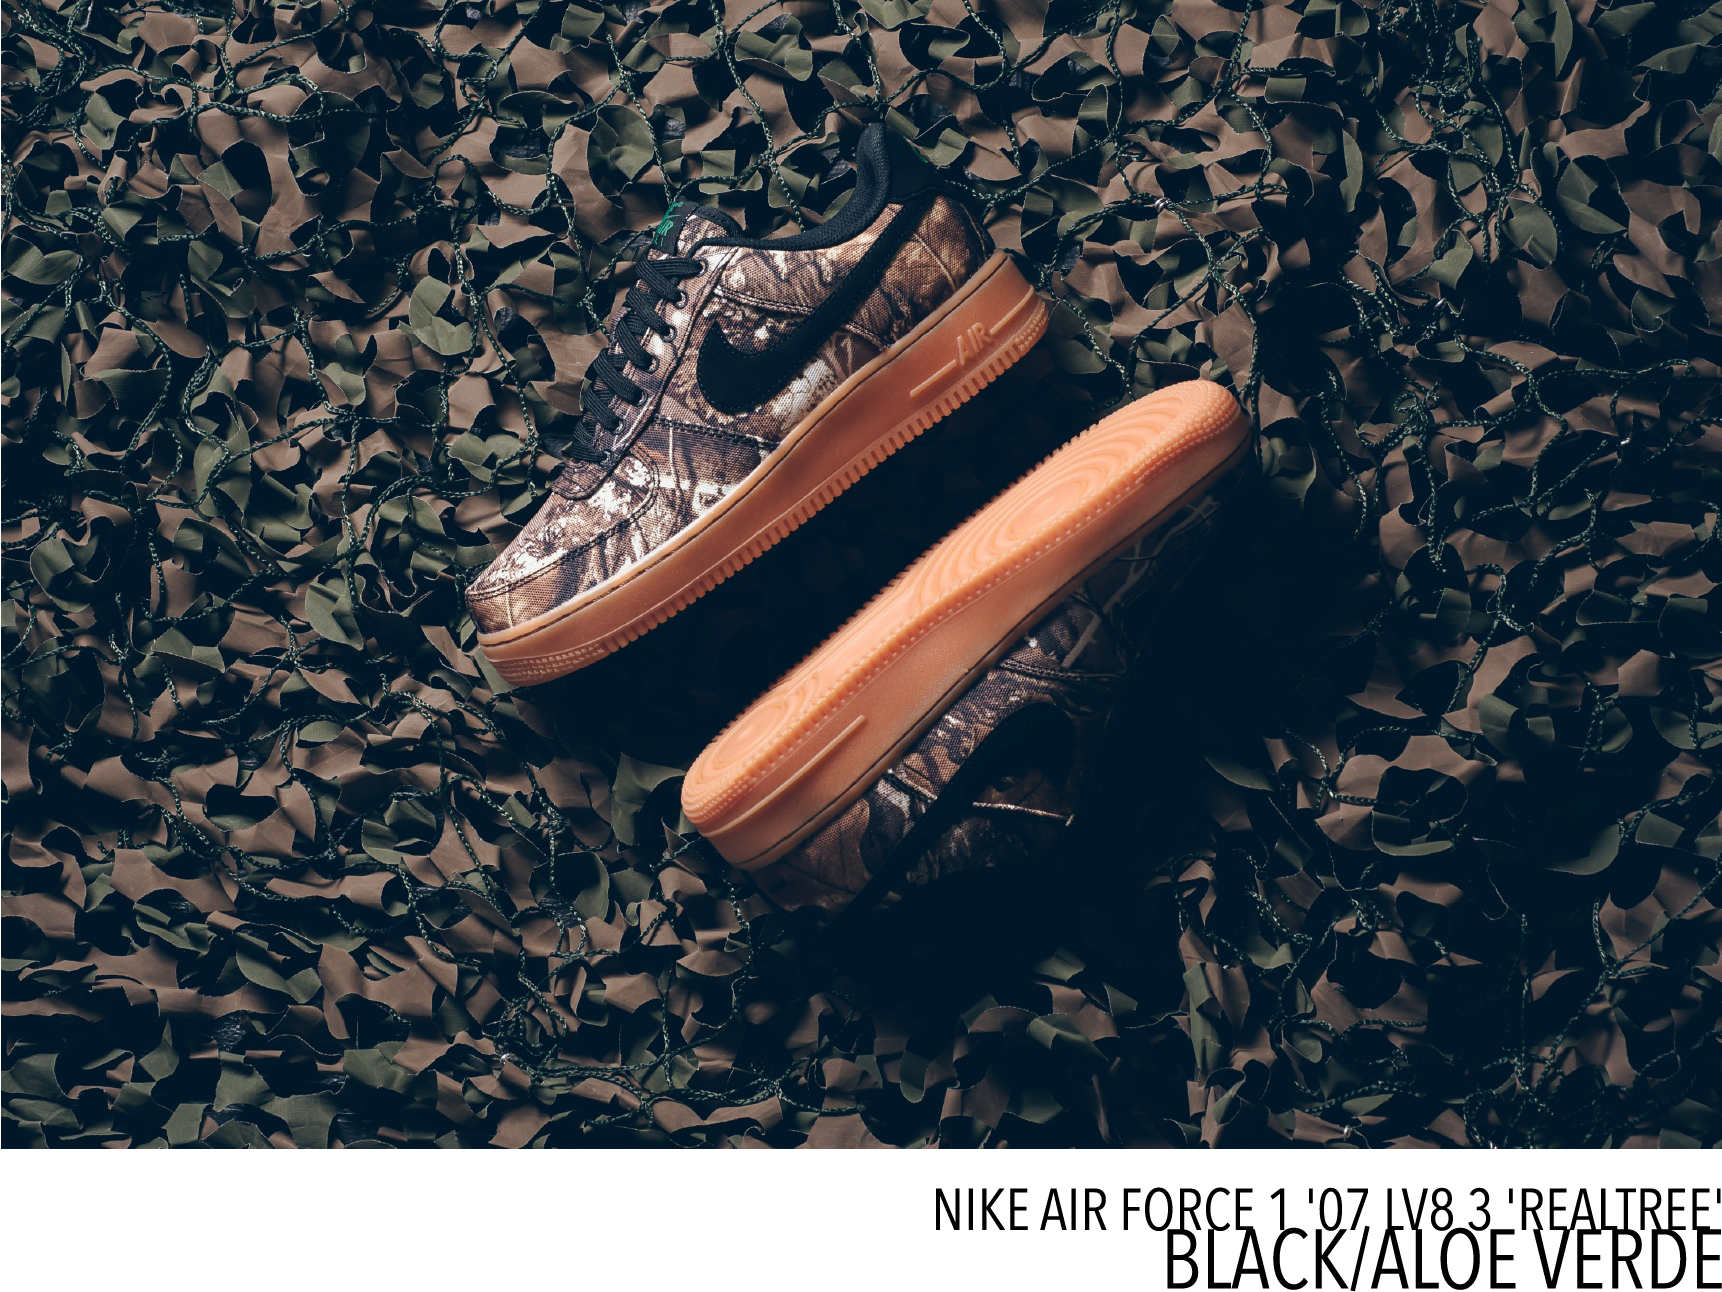 db062b6a9d9 FREEWATER x POLITICS MERCH AVAILABLE NOW! - Sneaker Politics Email ...